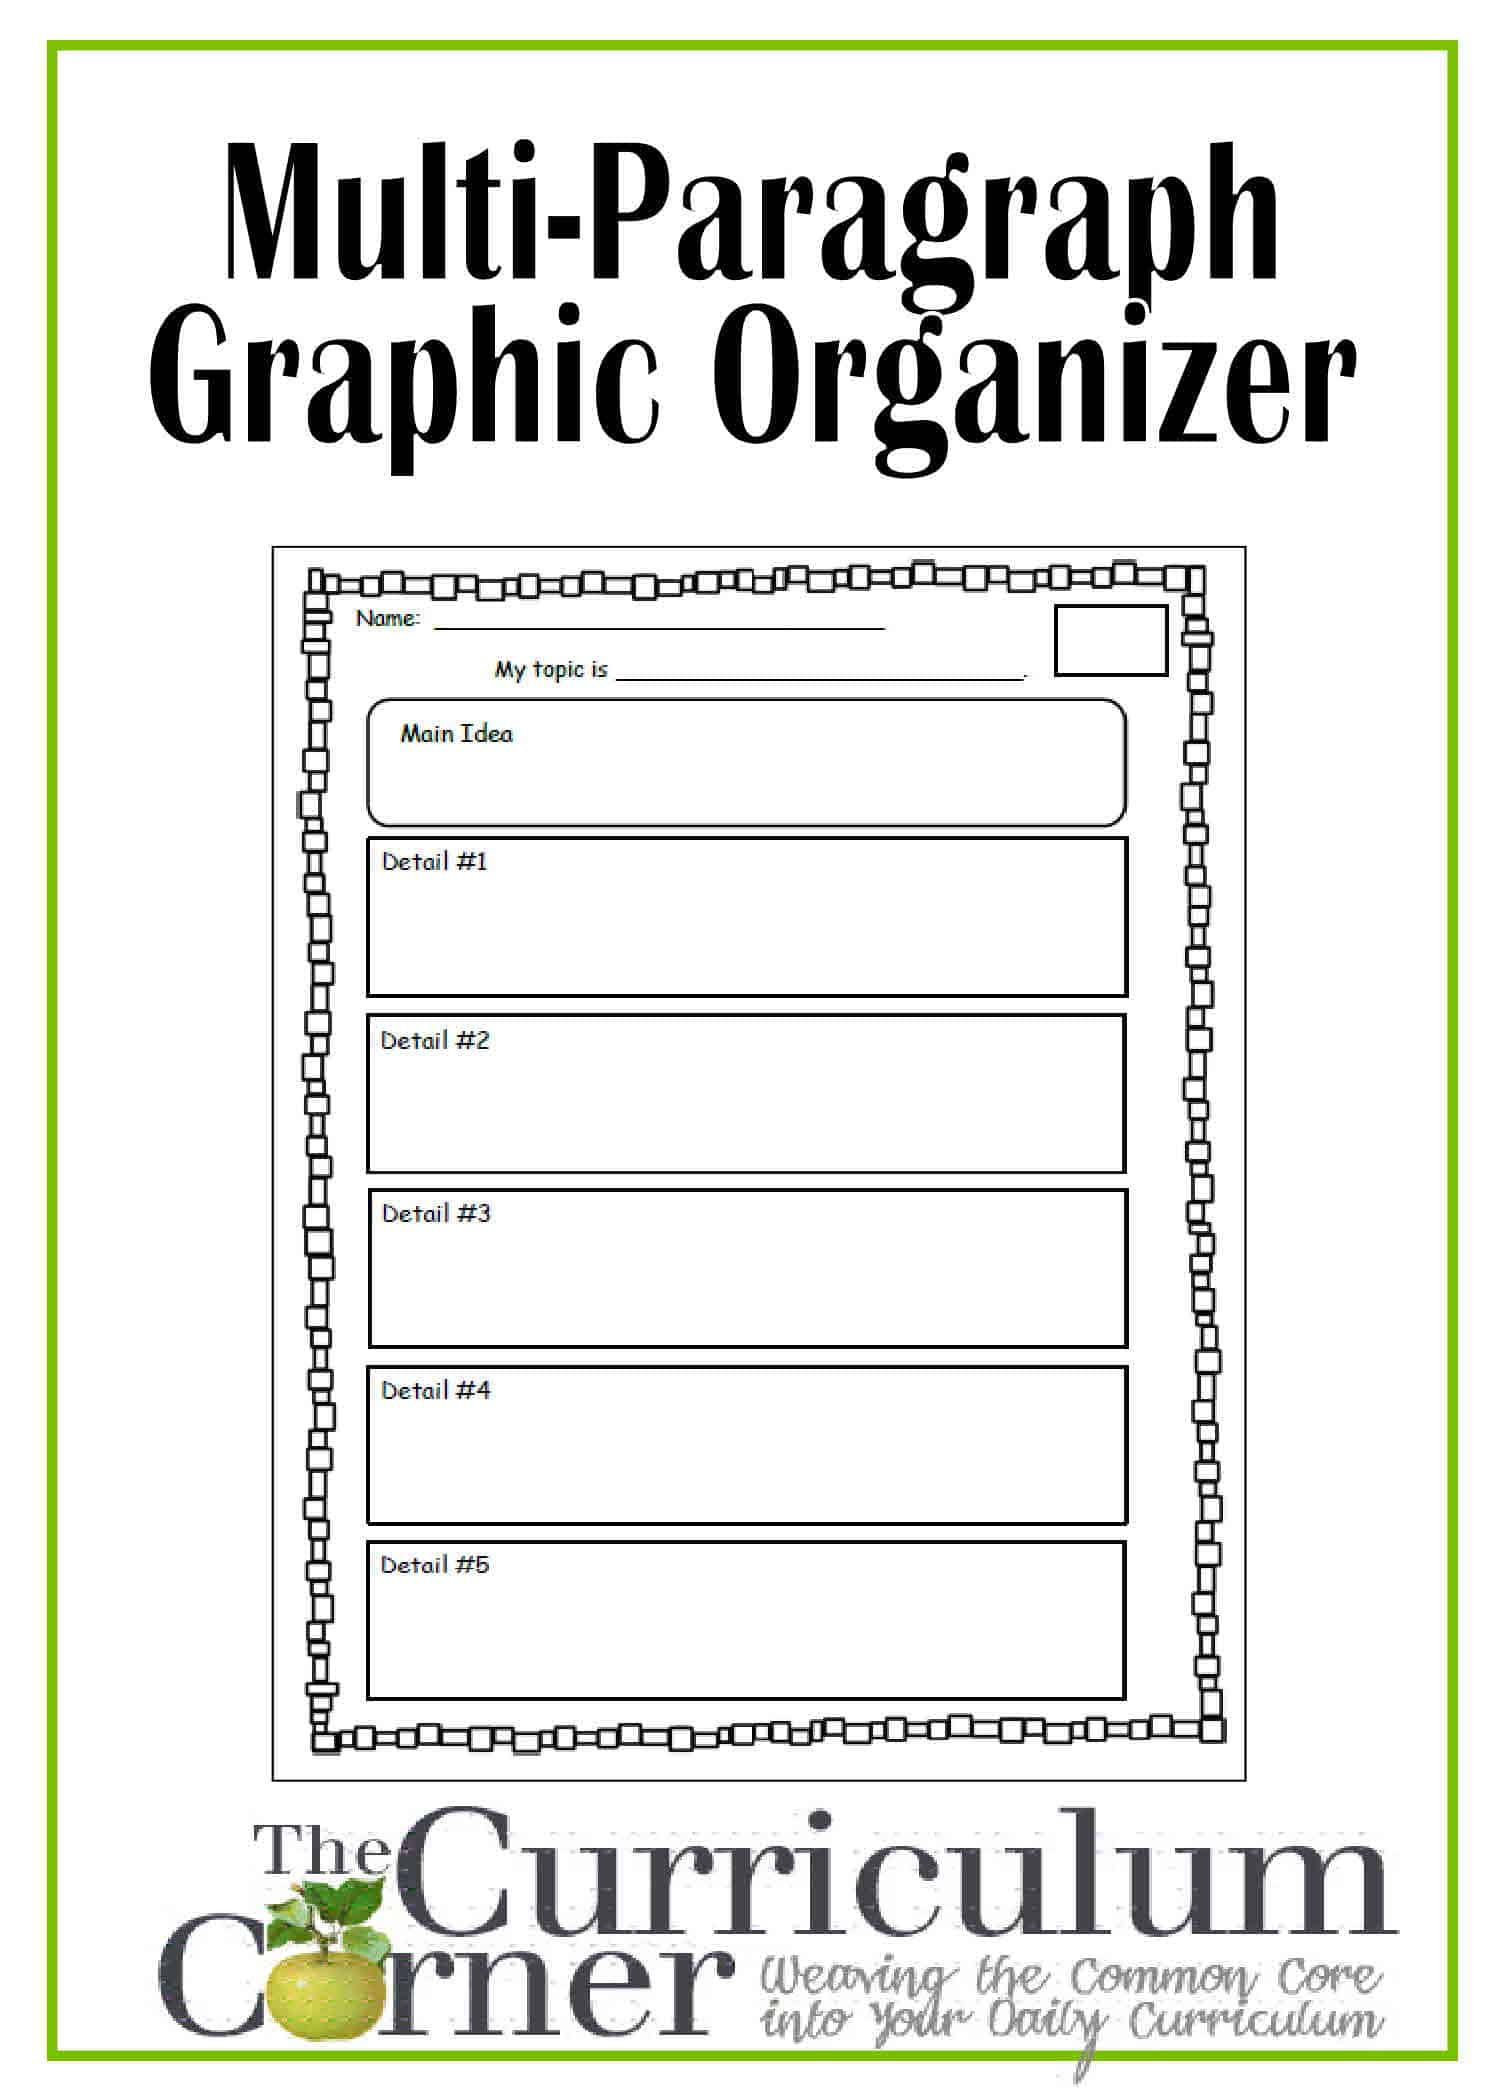 Graphic Organizer for Multi-Paragraph Research Papers